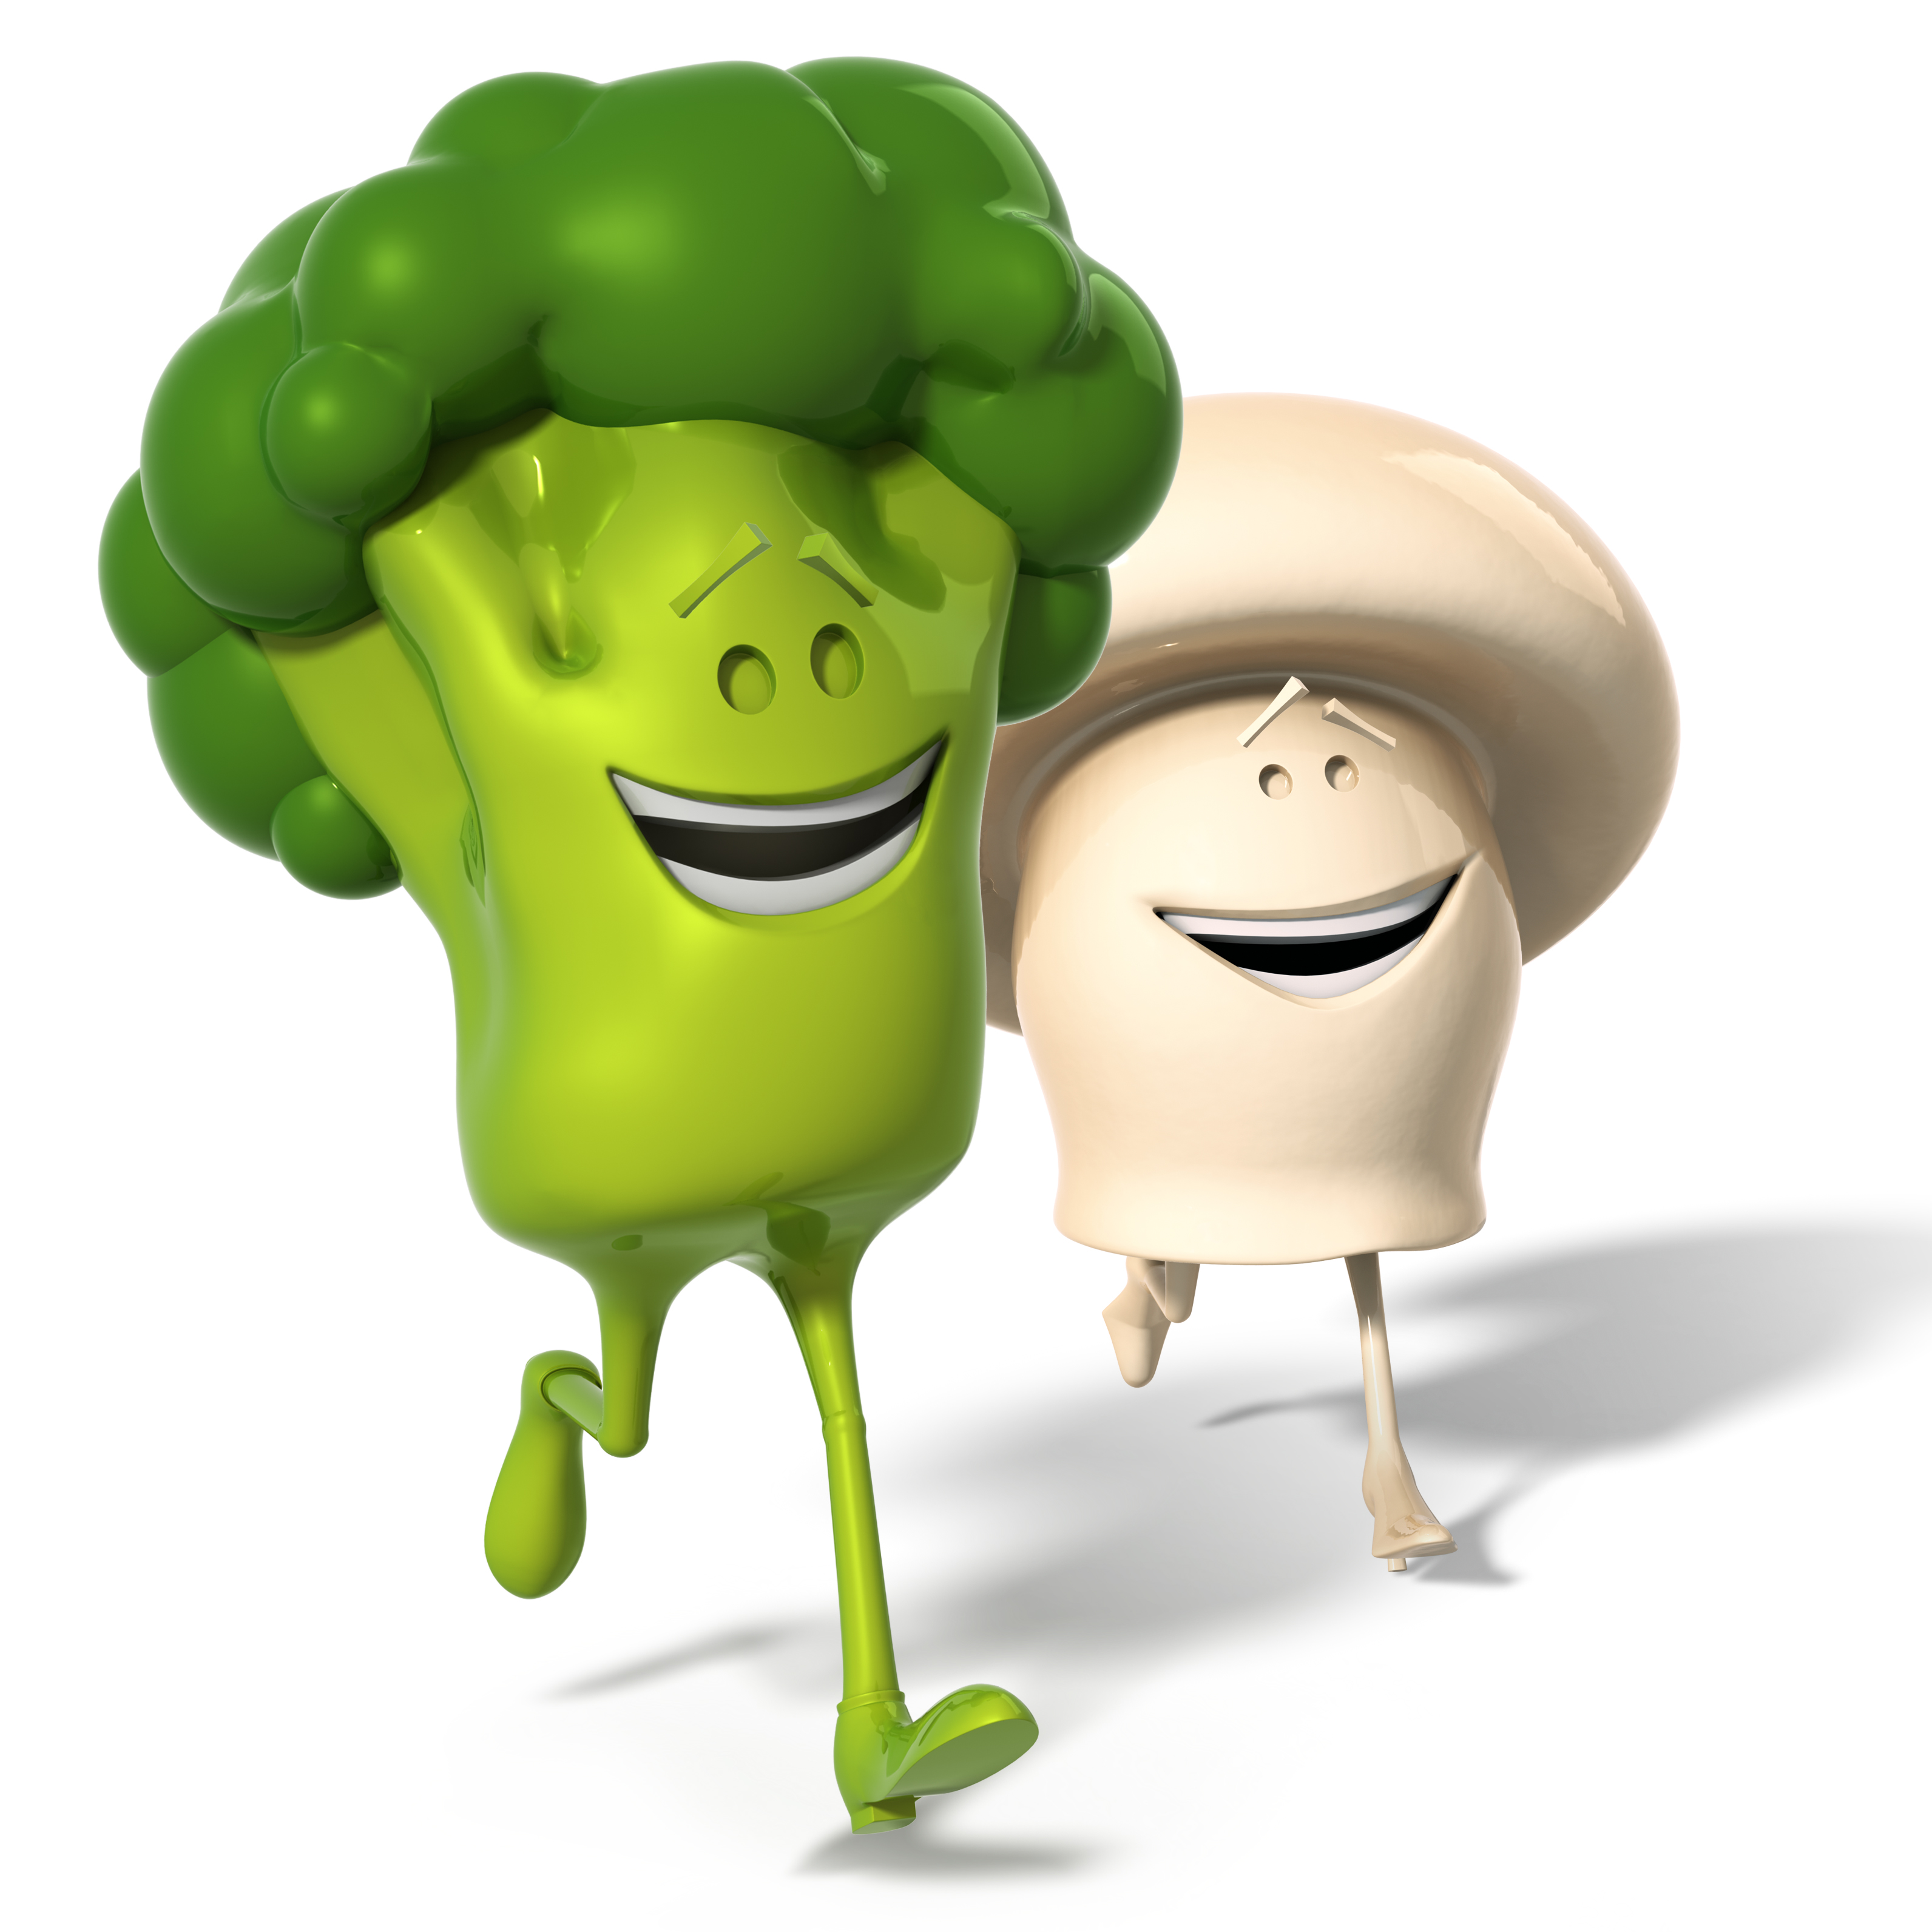 Mr. Broccoli & Mrs. Champignon - Bonduelle characters.